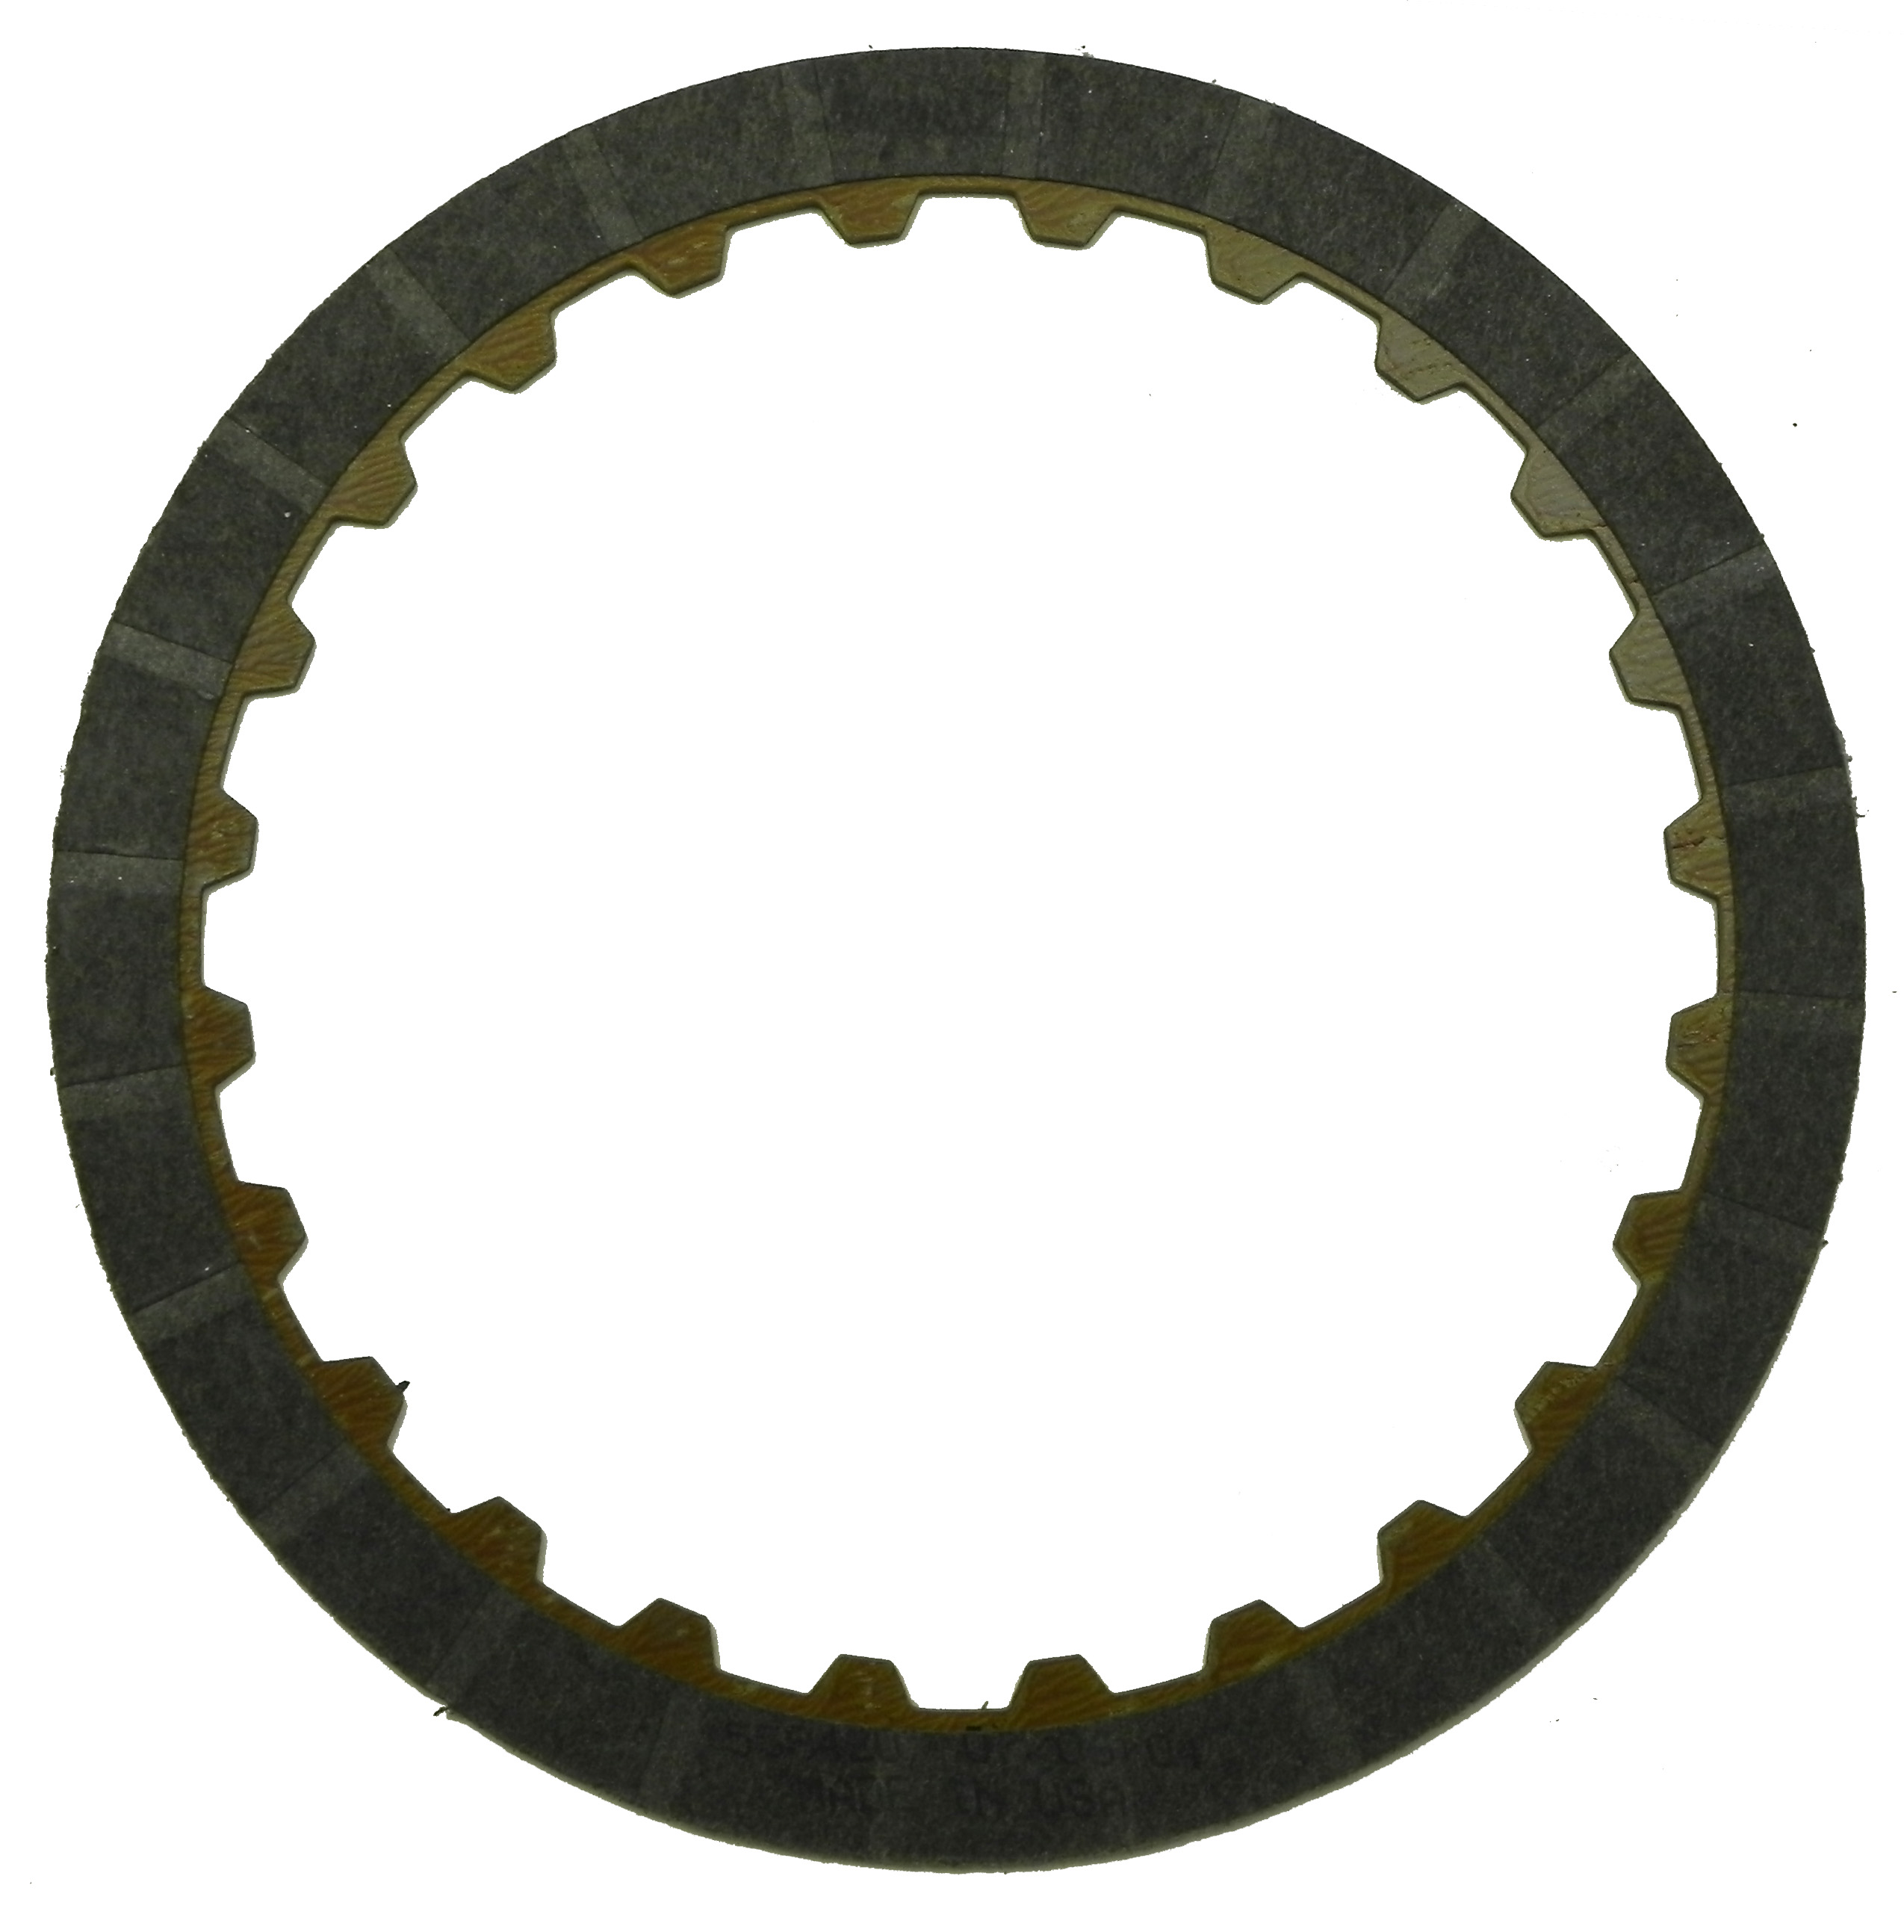 R558420 | 1999-ON Friction Clutch Plate High Energy Coast, Single Sided, ID Spline High Energy